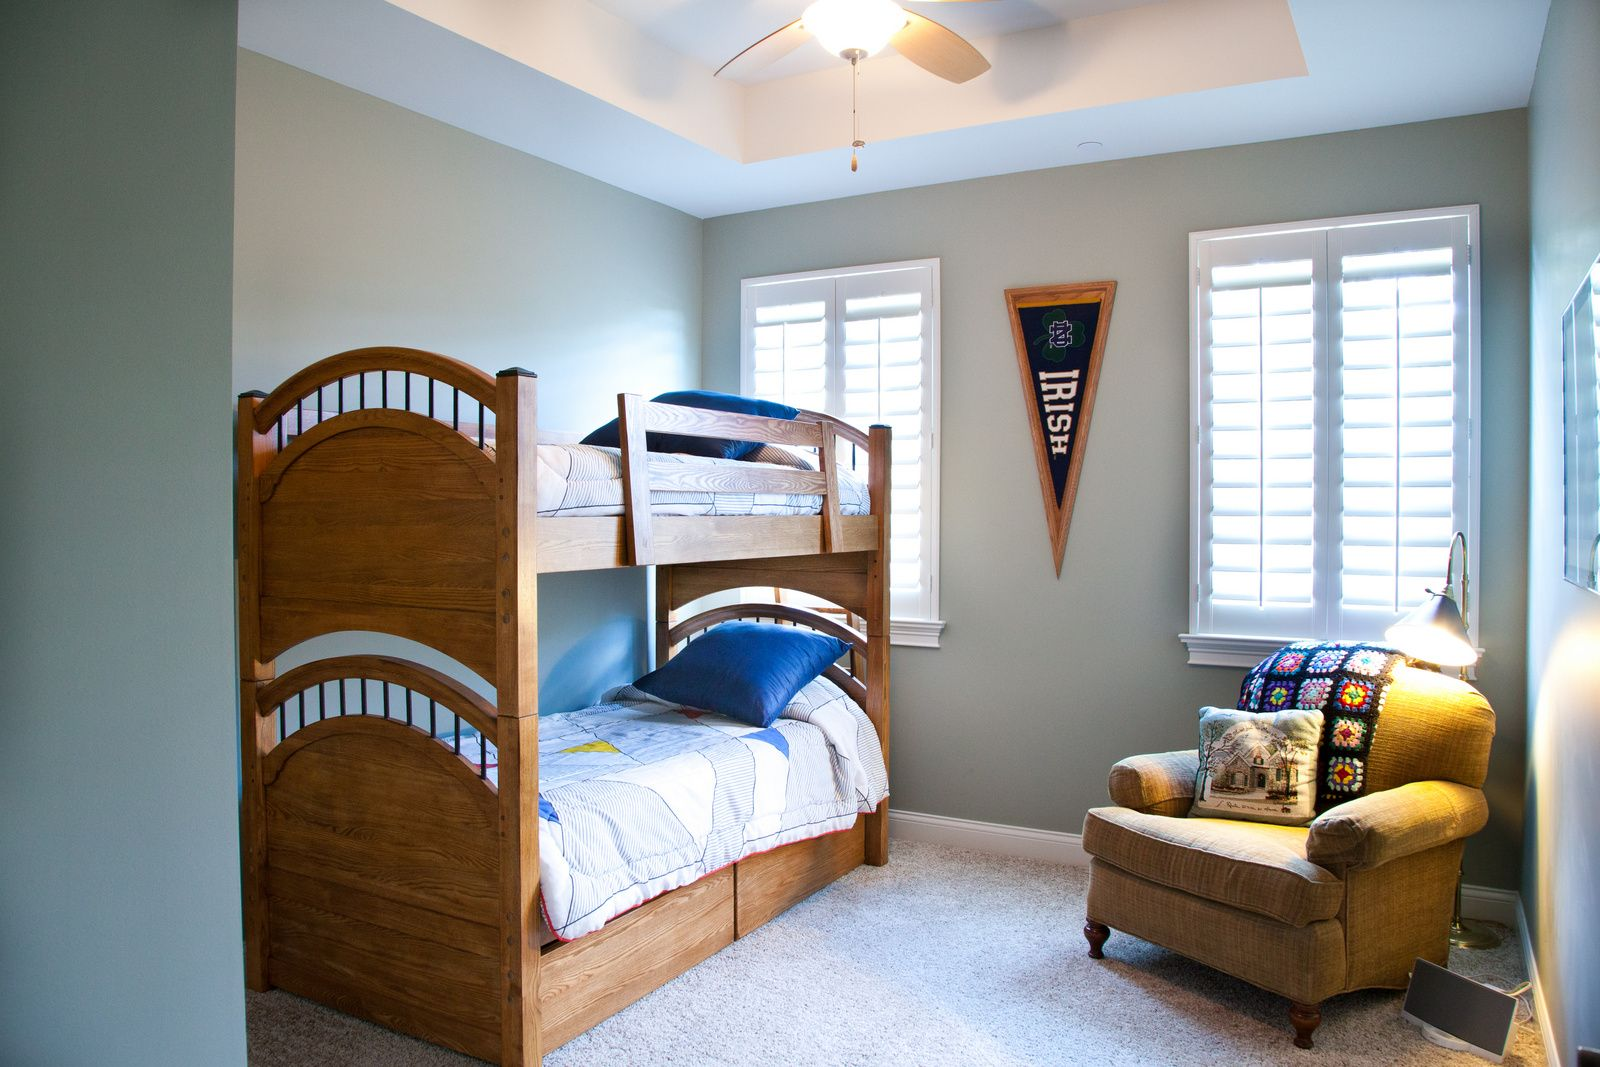 ivy quad bedroom 10 ceilings with coffer bunk beds chair